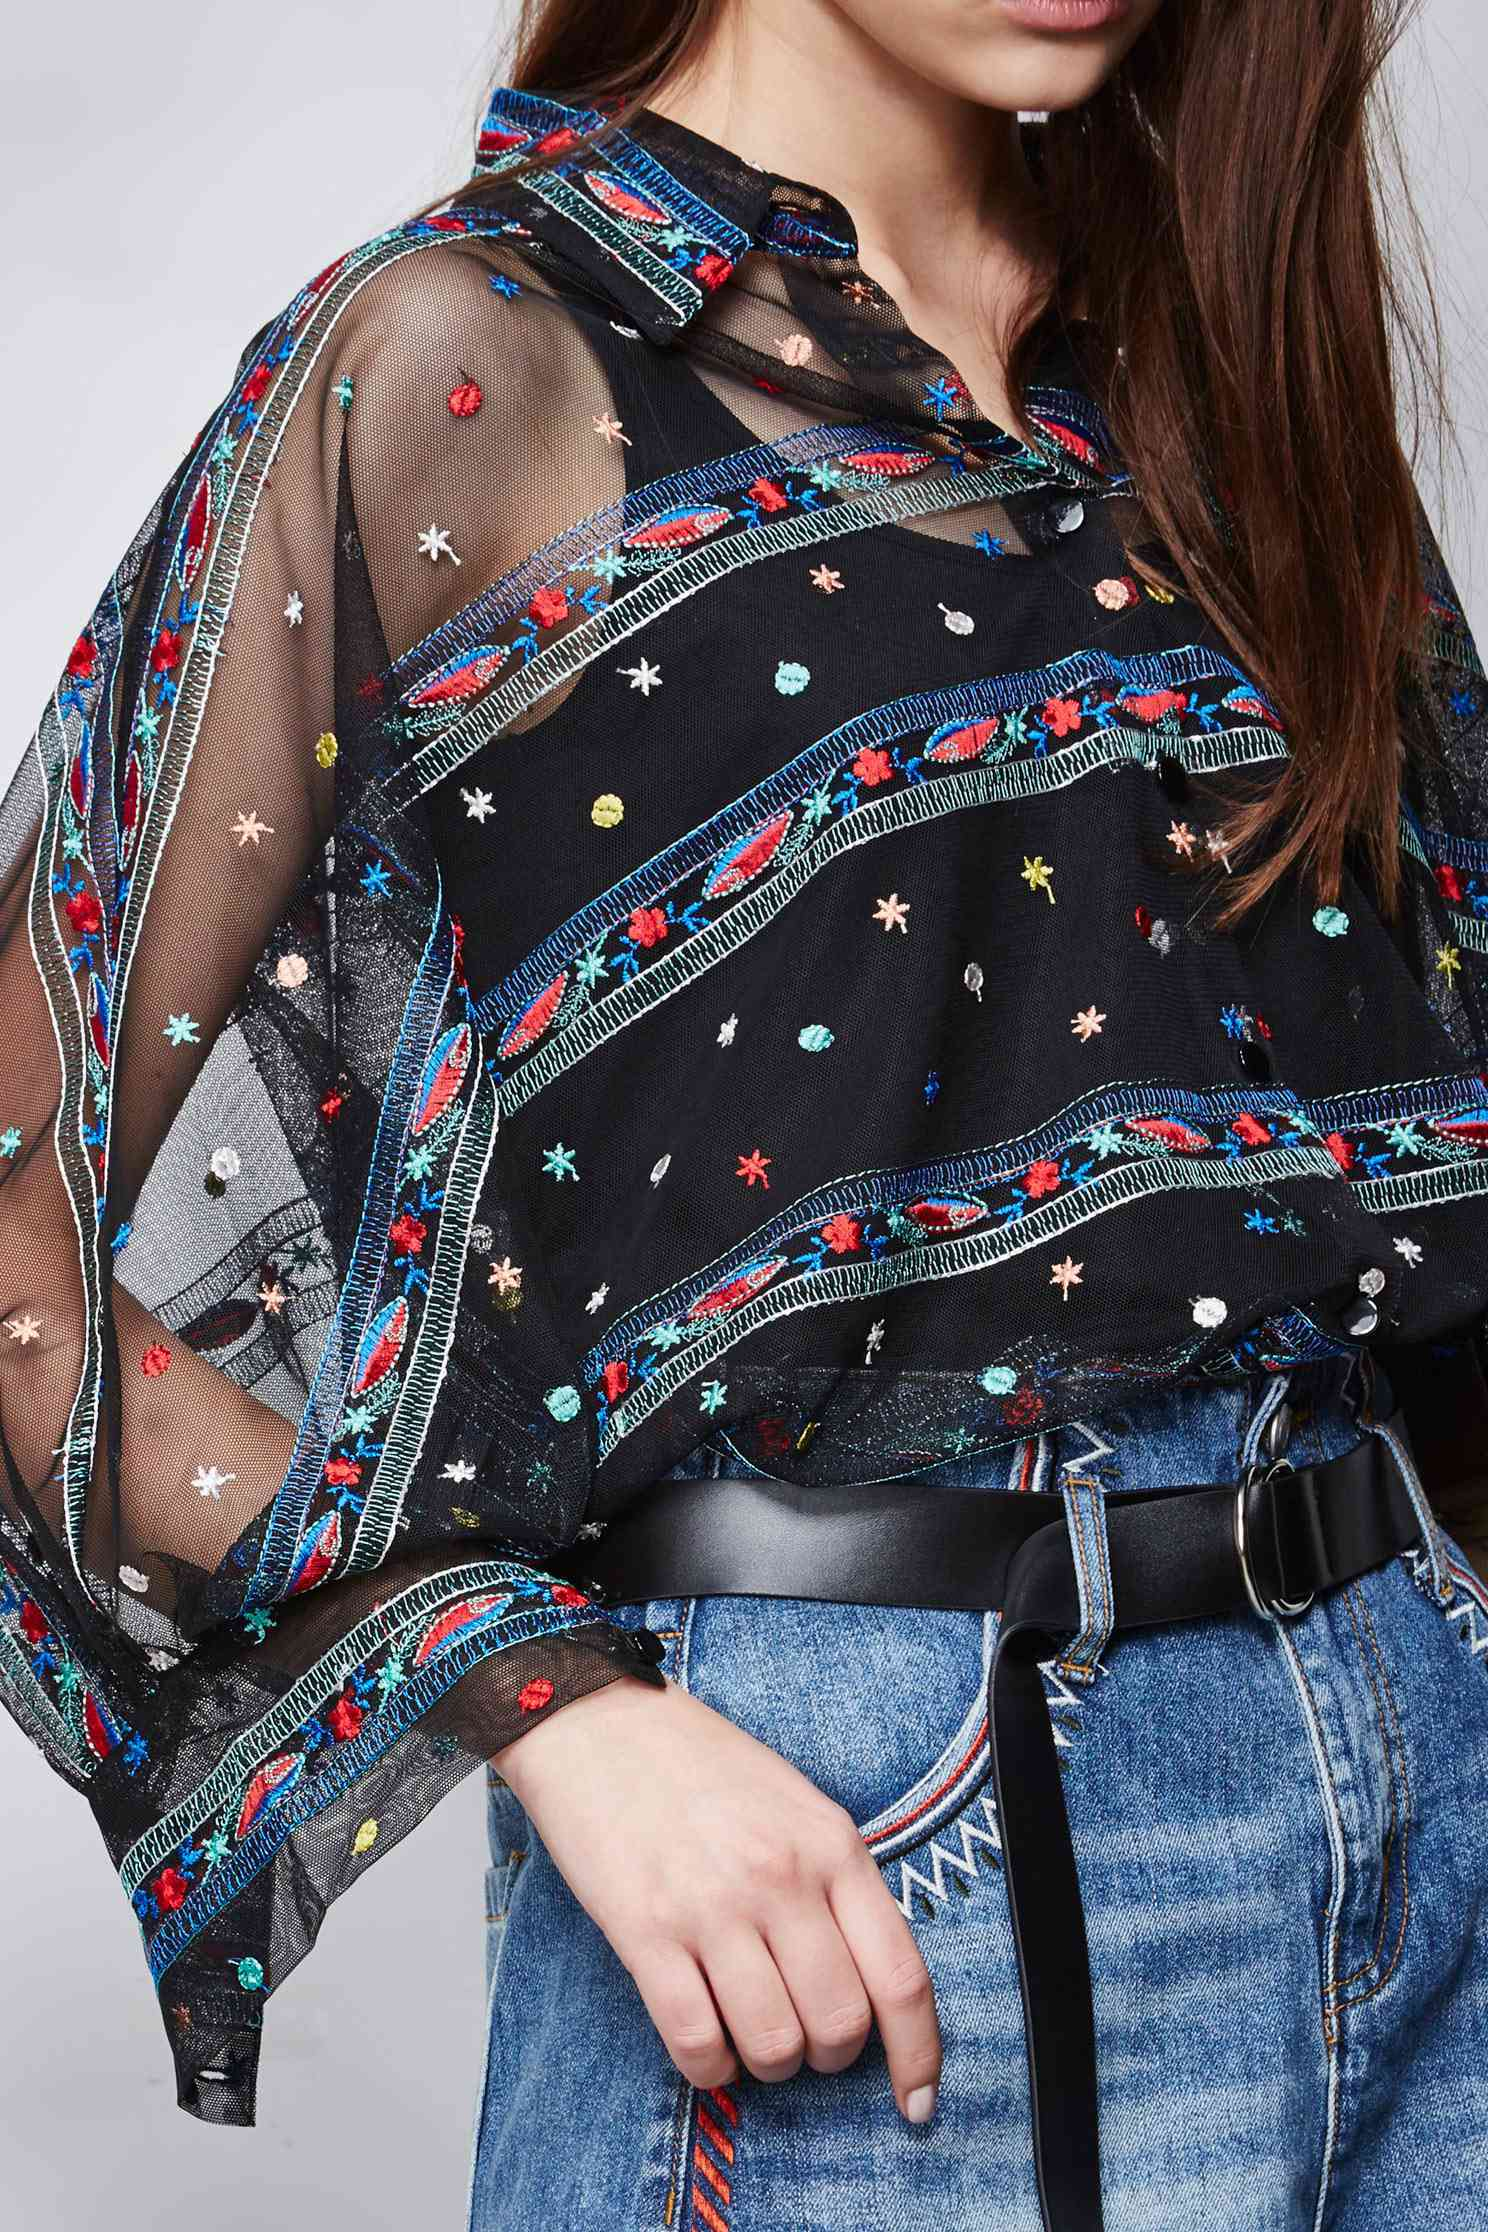 Embroidered street mesh top,Top,embroidery,刺繡上衣,Valentine,Mesh,embroidered,繡花上衣,長袖上衣